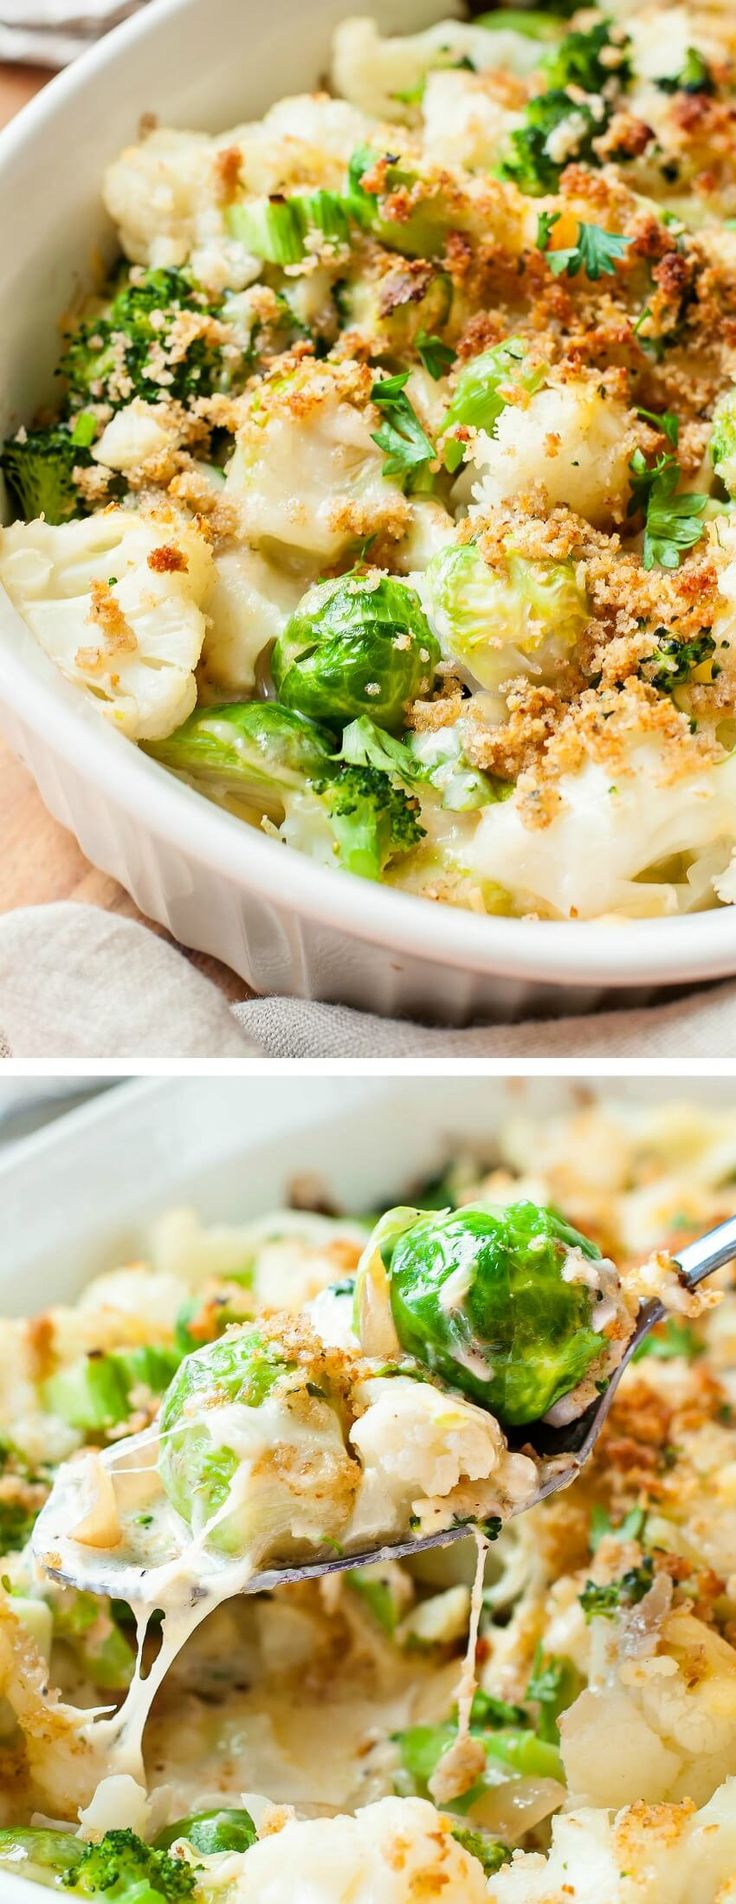 Cheesy Broccoli, Cauliflower, and Brussels Sprouts blanked in the most amazing cheese sauce ever! We're crazy for this easy cheesy casserole